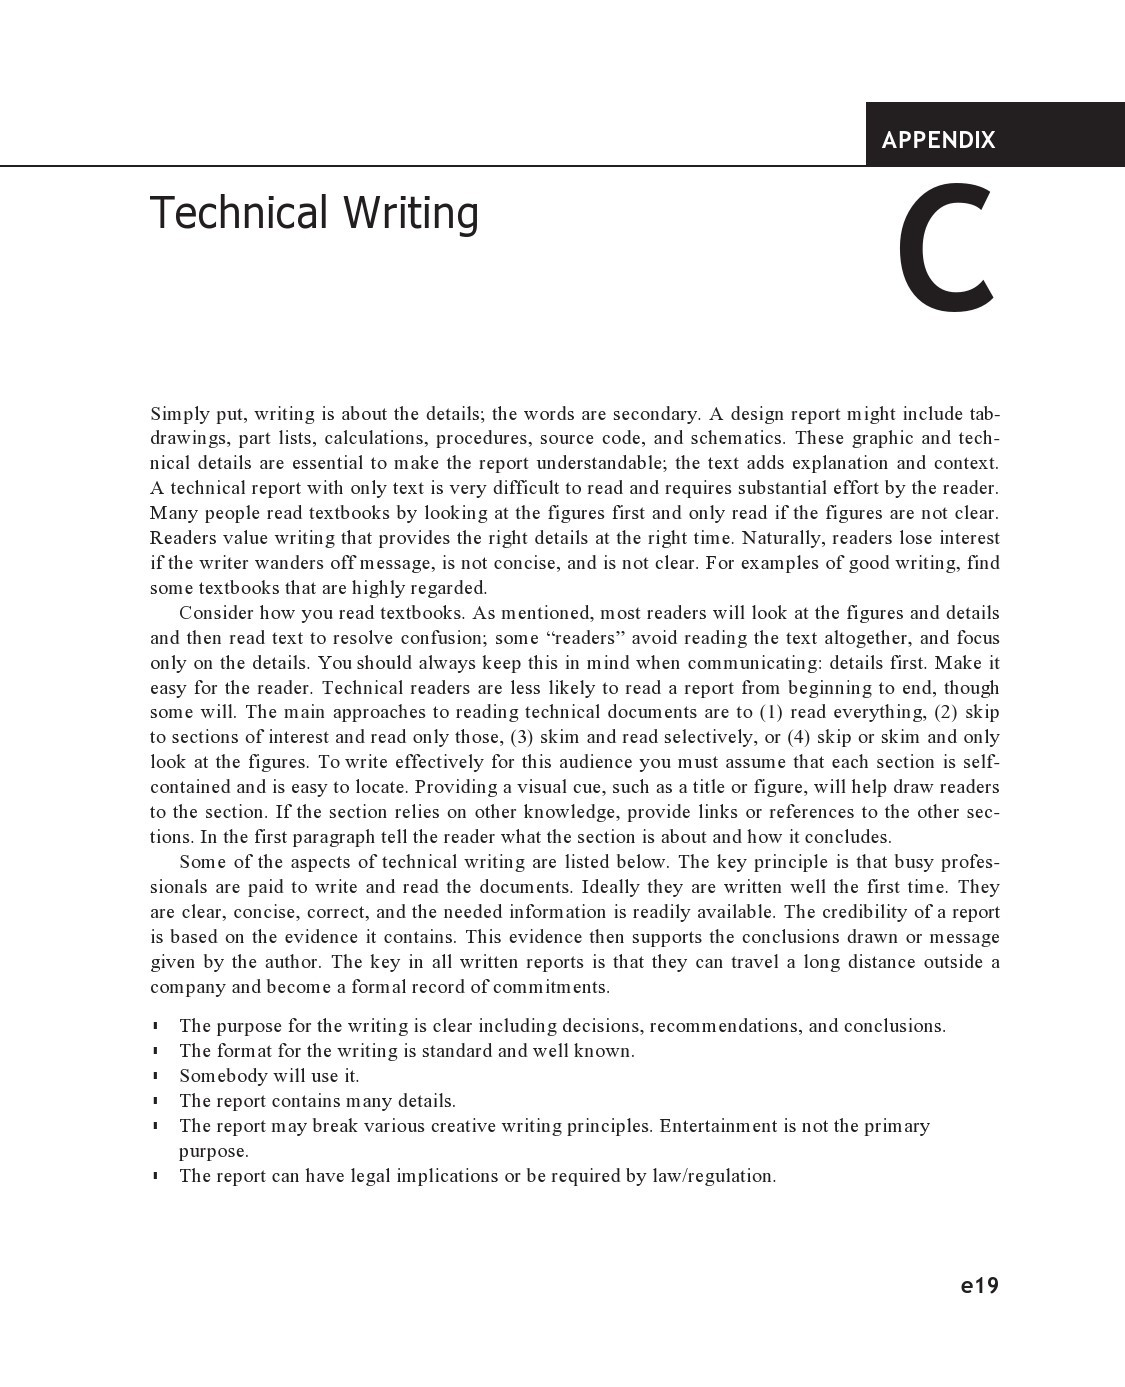 Free technical writing examples 13